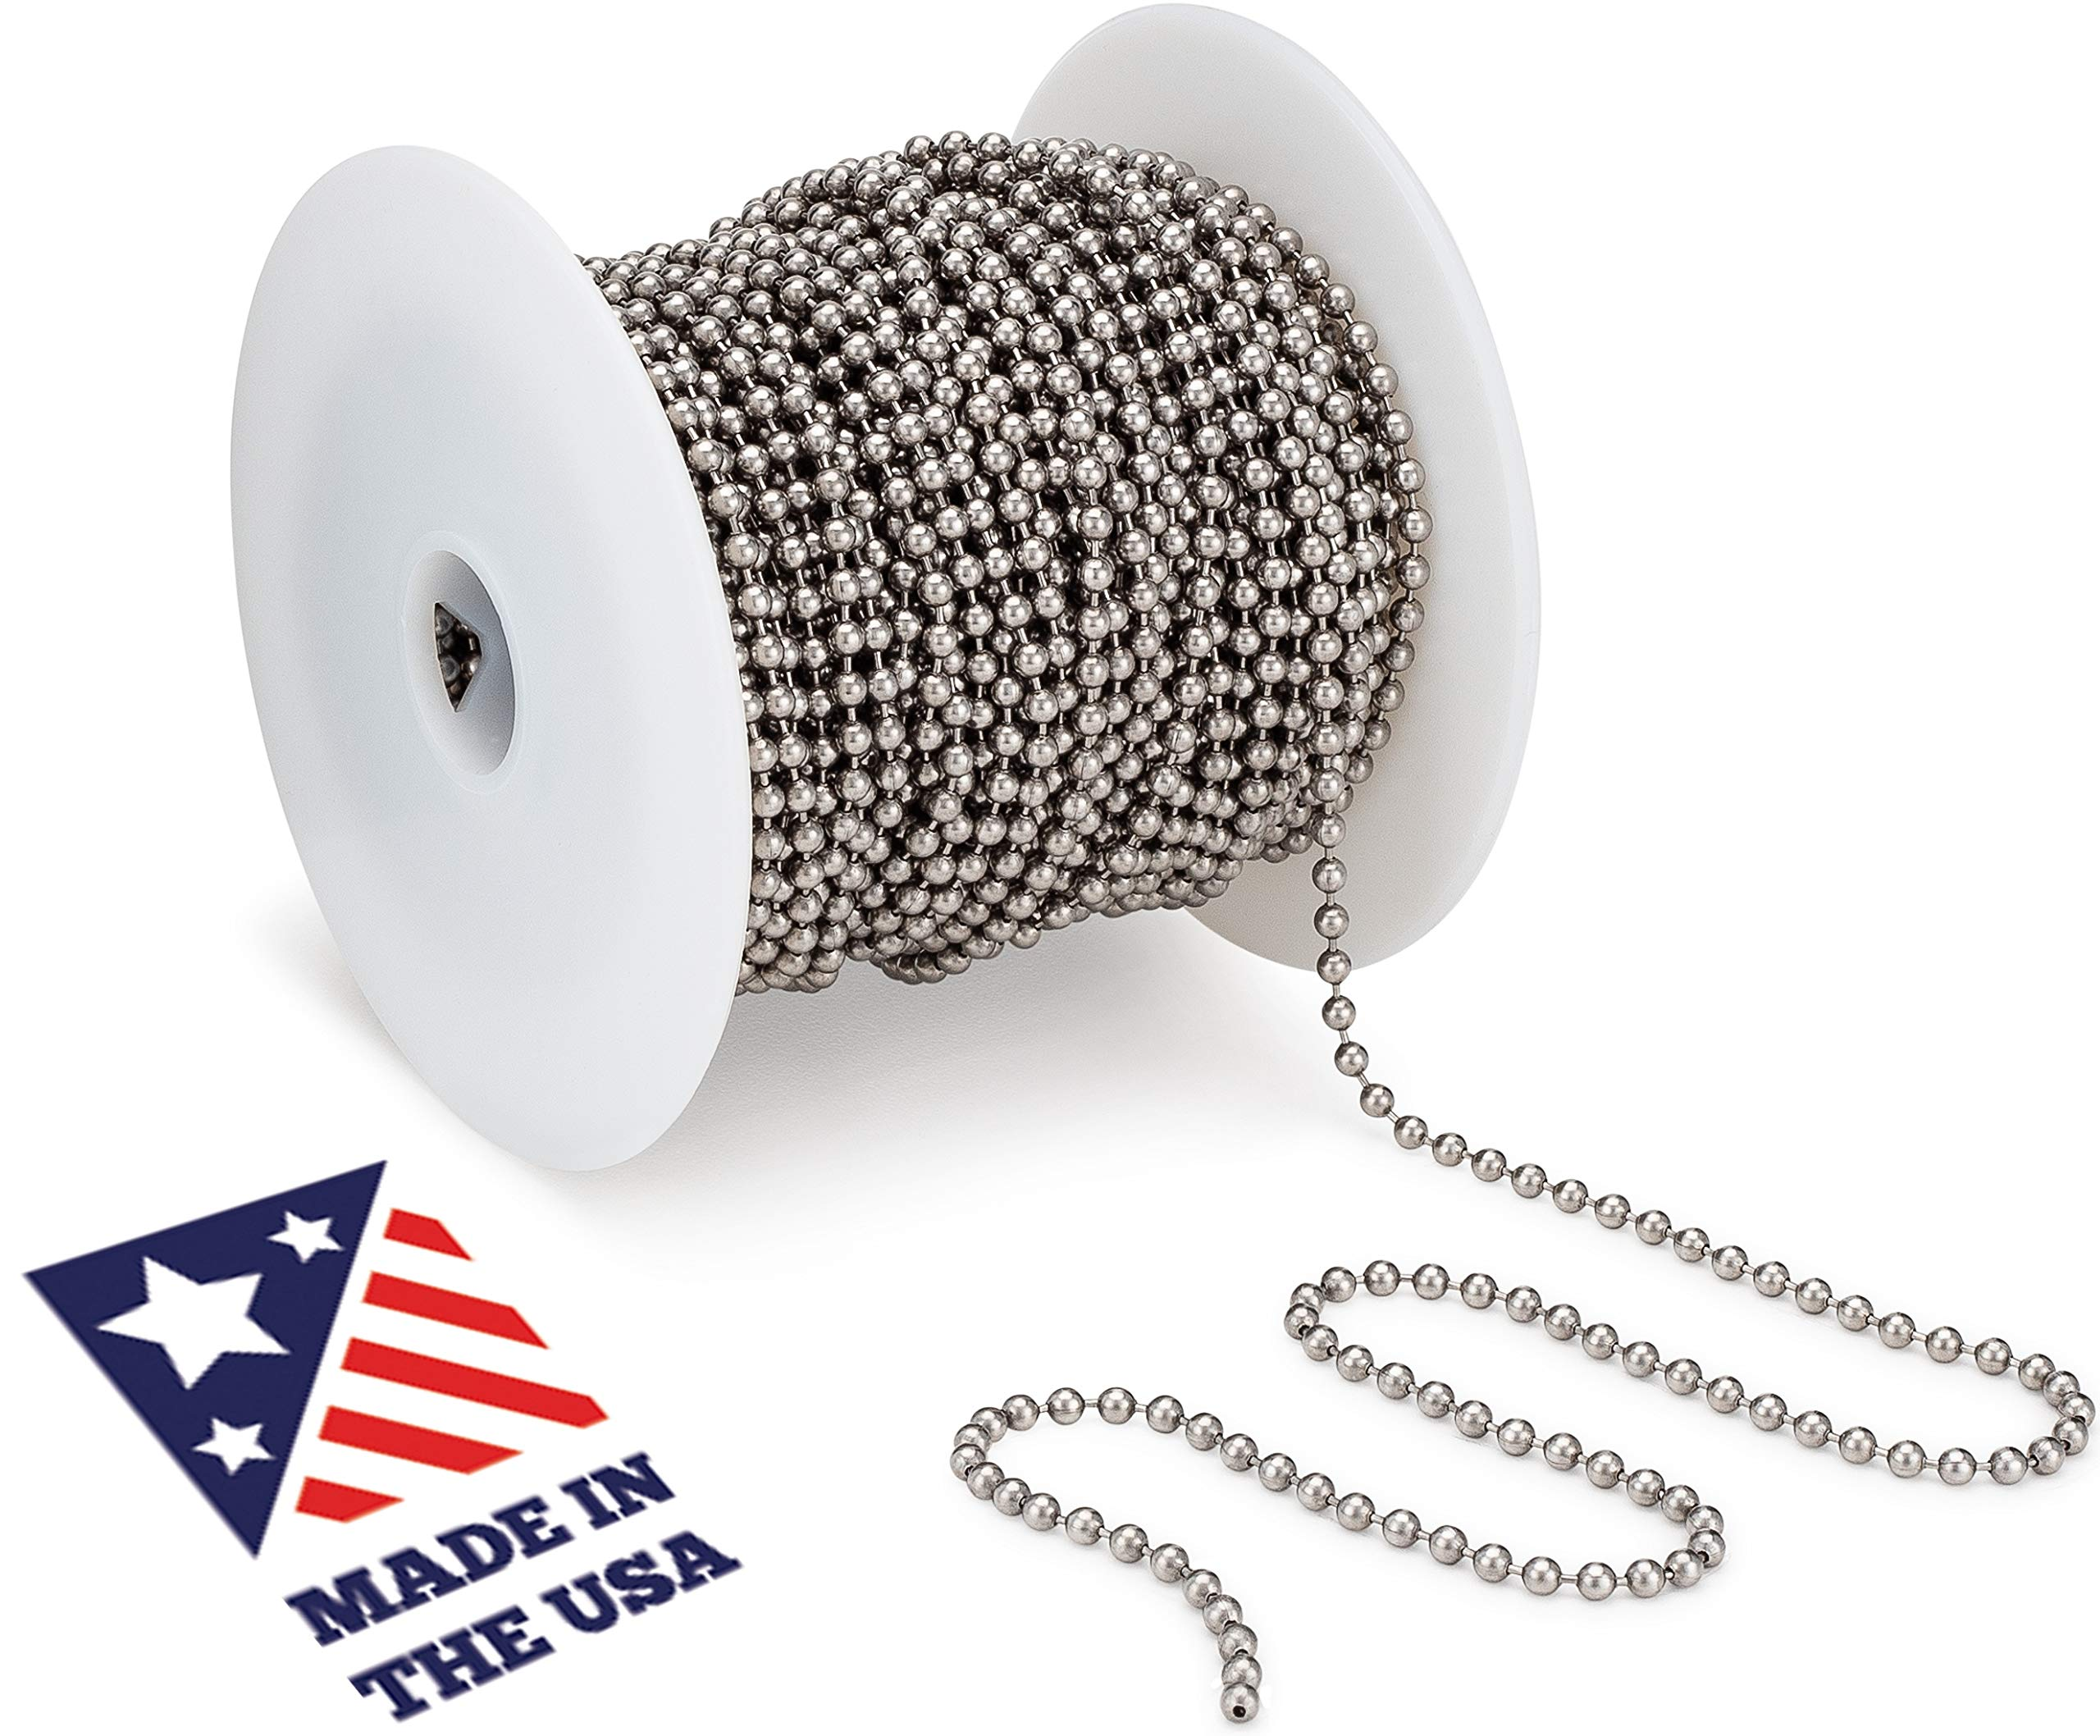 Beaded Ball #6 Chain - Stainless Steel 100 Feet Spool for Plumbing and Industrial Equipment Labeling, Commercial Retaining Applications and Vertical Blinds by WAXAW